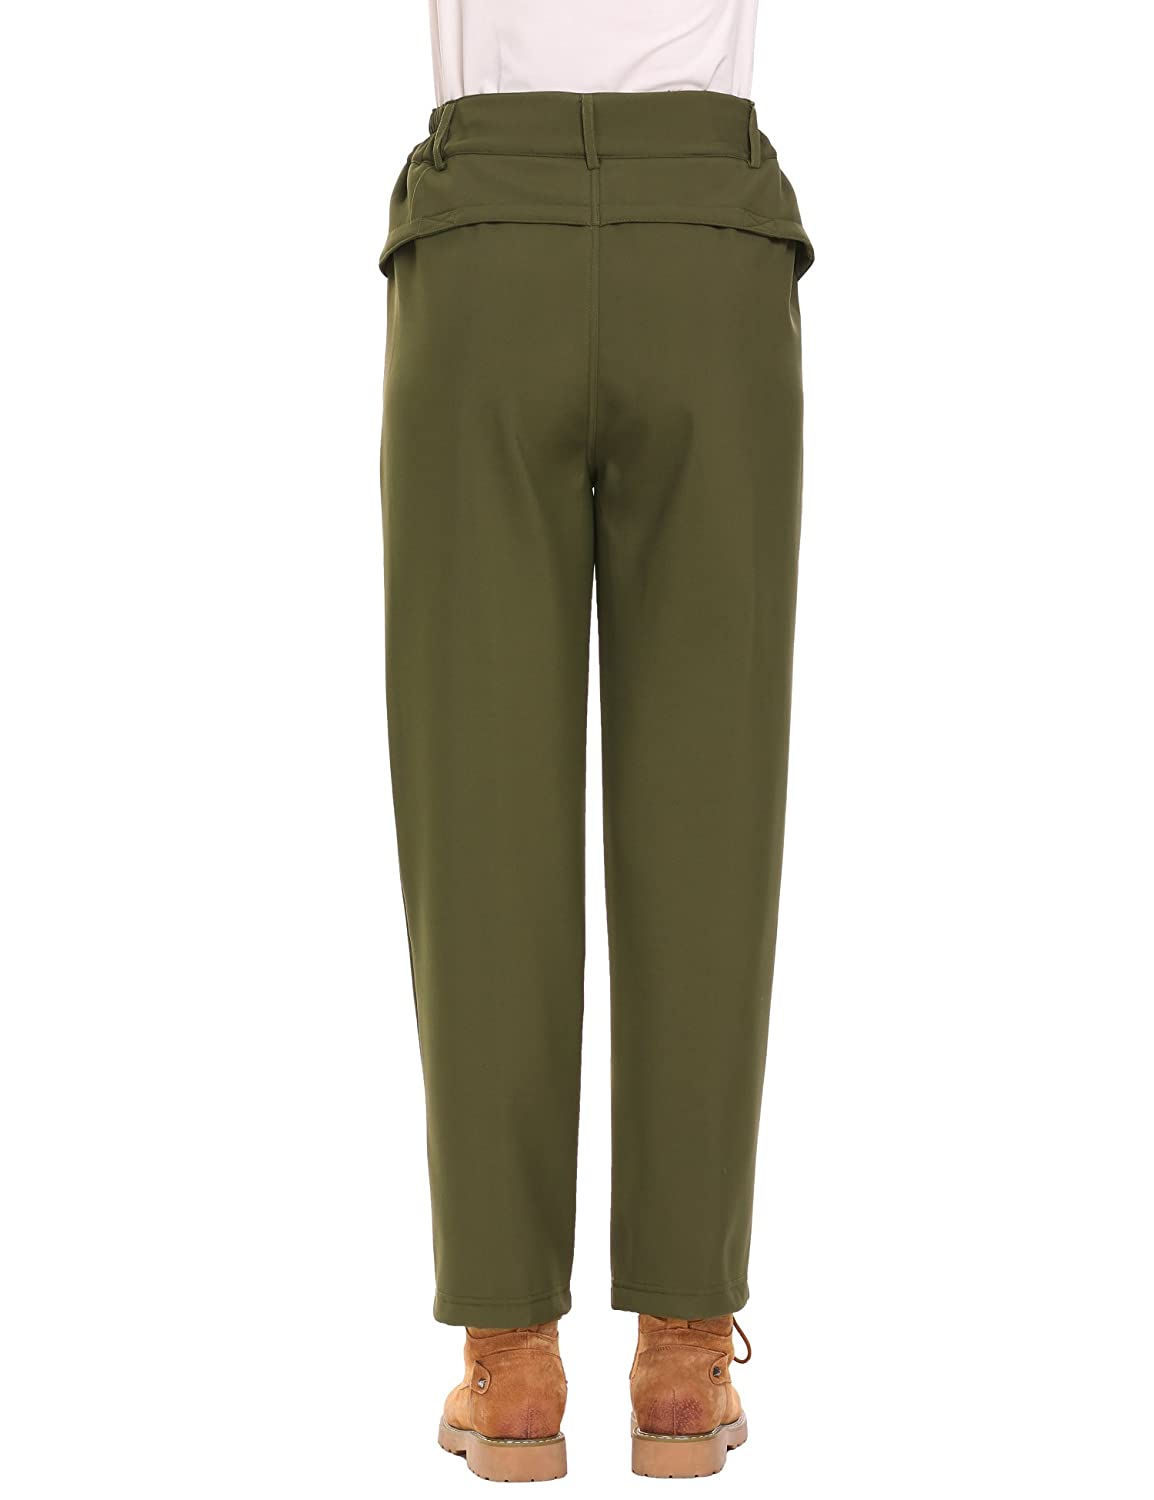 INVOLAND Womens Winter Outdoor Waterproof Fleeced Lined Hiking Pants Insulated Snow Ski Cargo Pants with Pockets